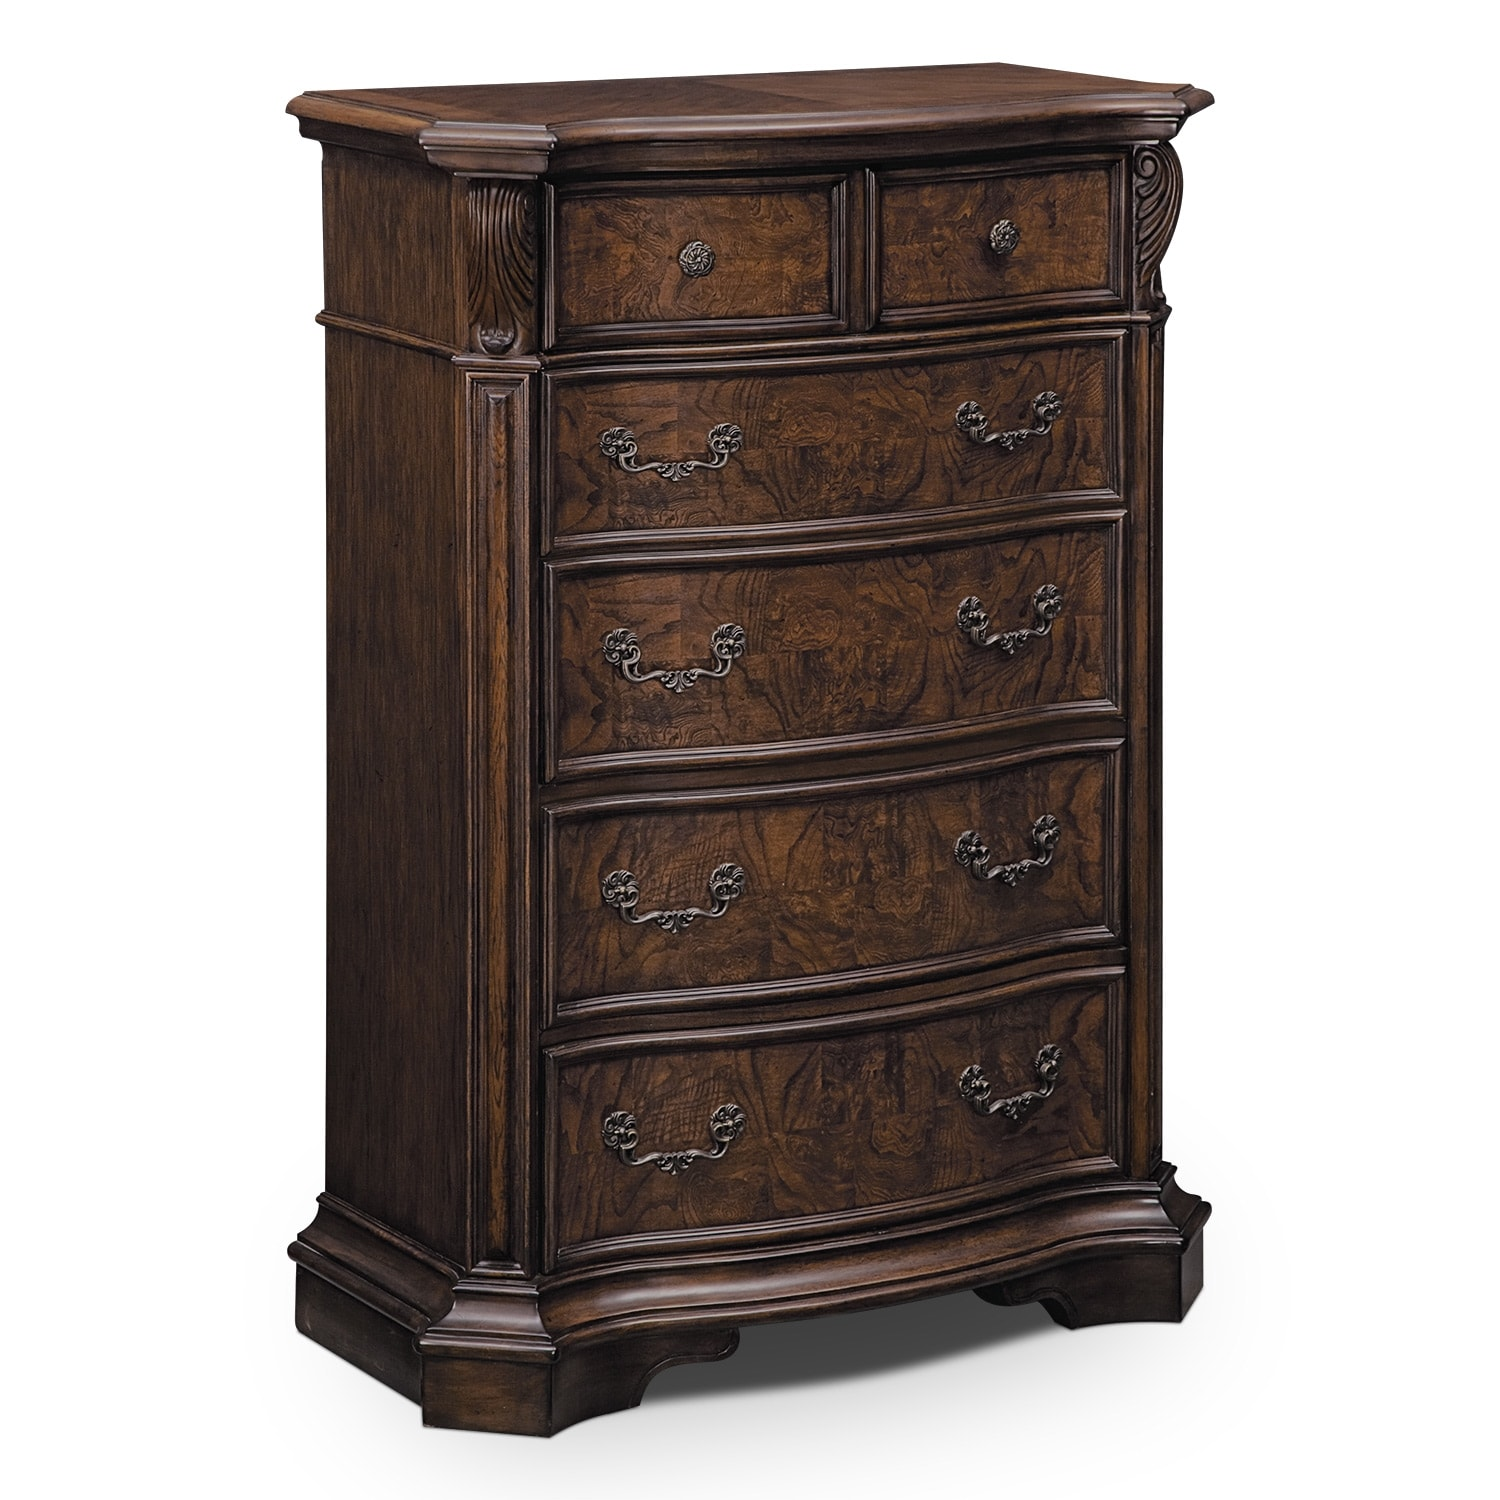 Bedroom Furniture - Monticello Chest - Pecan